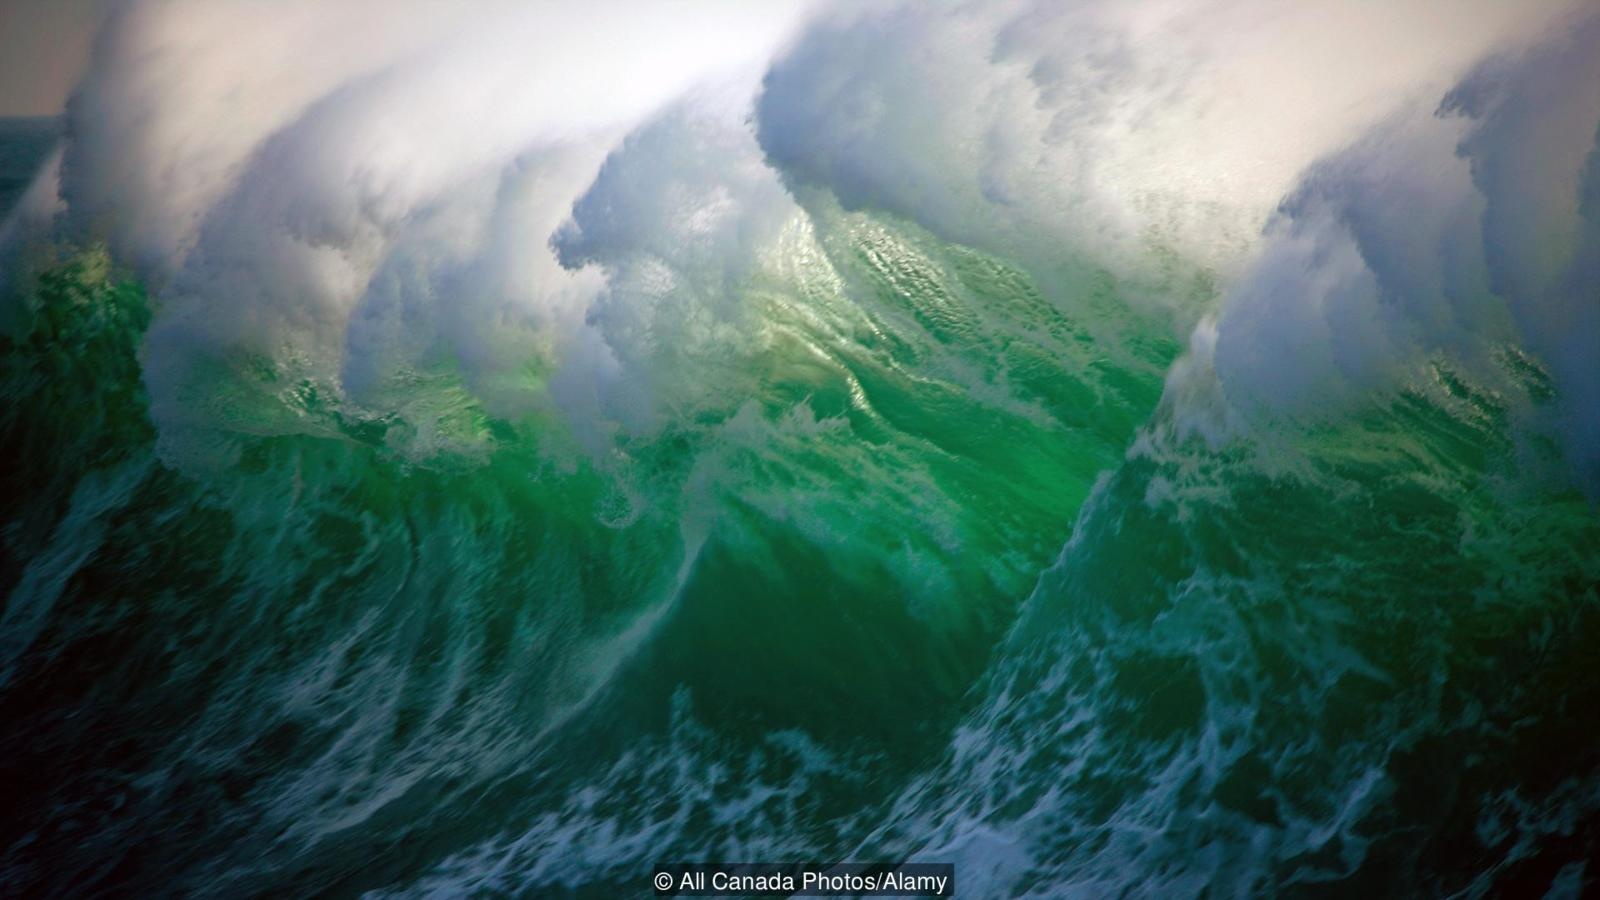 rogue wave, rogue wave prediction, rogue waves, rogue waves are real, how do rogue waves form